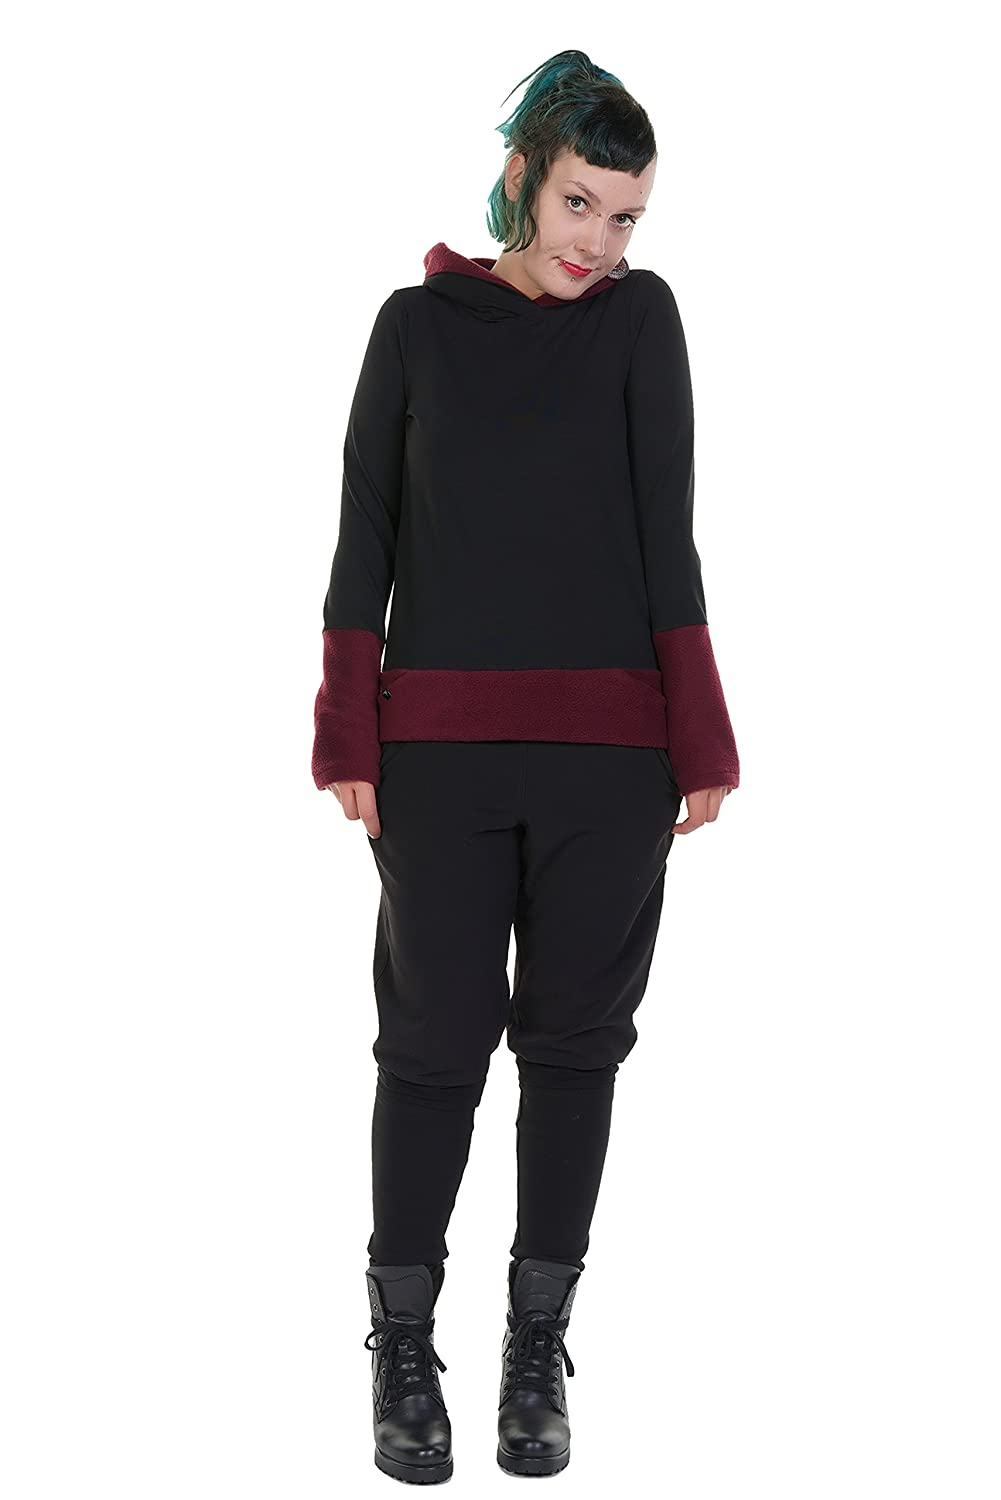 5bd3e2e8217 3Elfen Hooded Pullover Winter Magic for Woman Black with Cuffs Made in  Berlin: Amazon.co.uk: Clothing